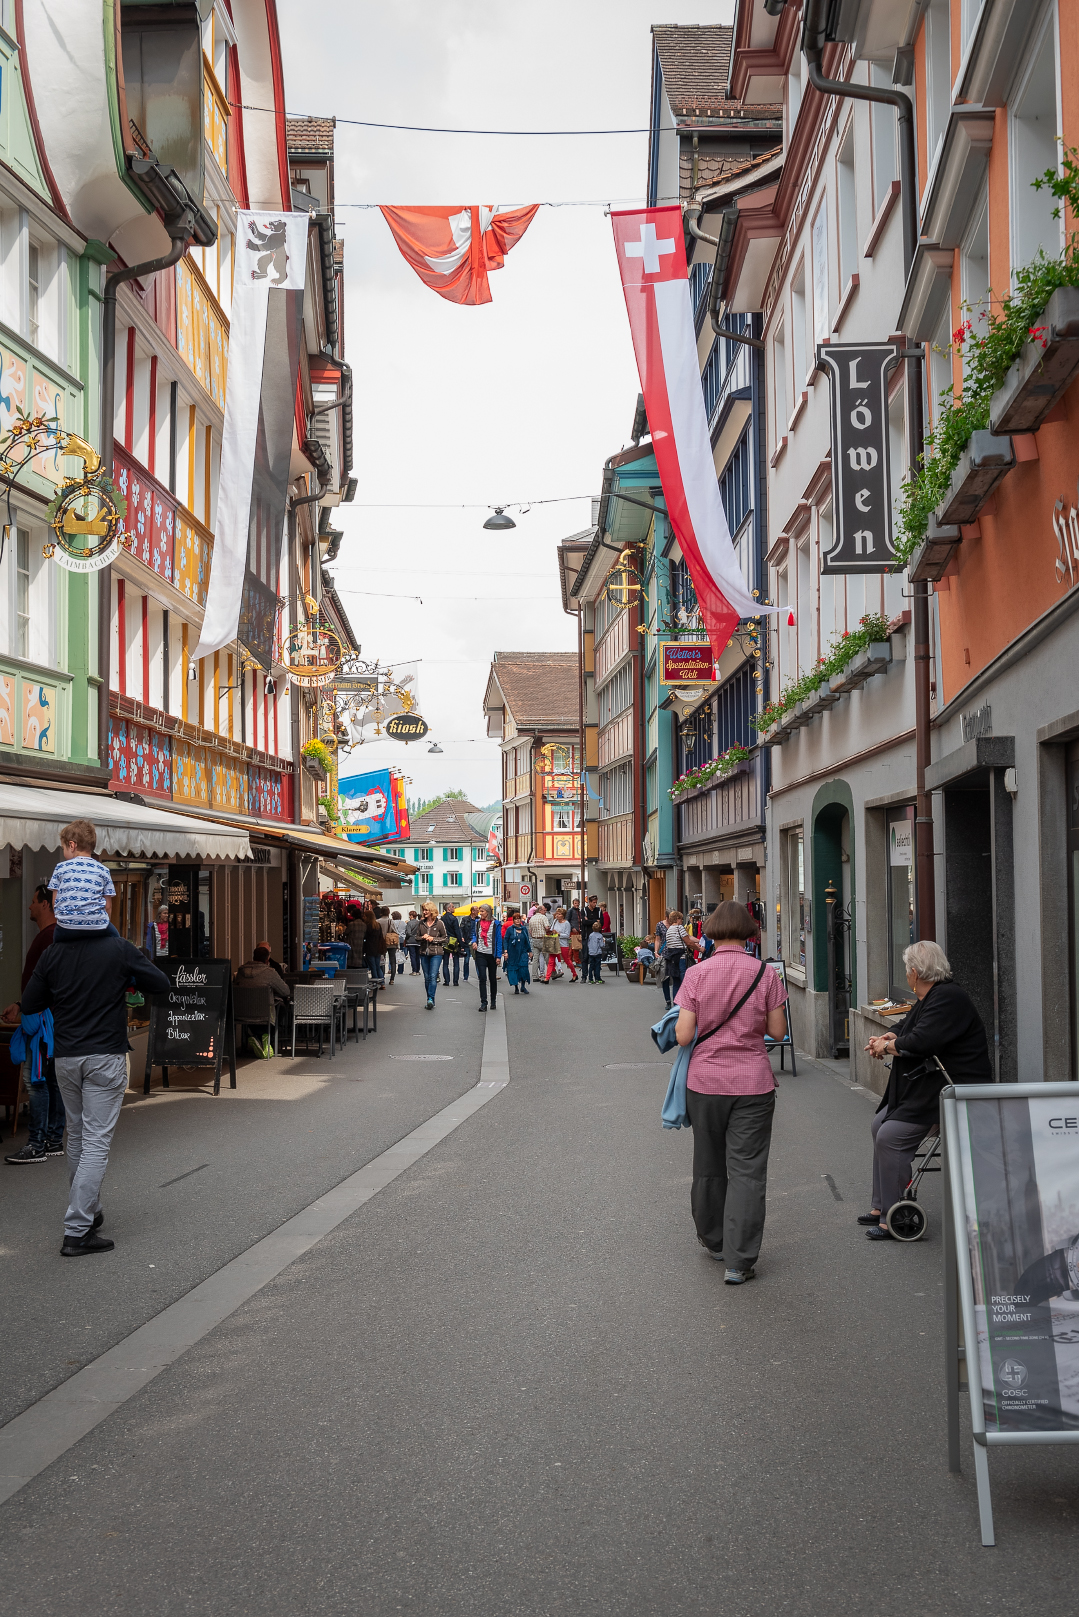 Colorful shopfronts line a street in Appenzell, Switzerland.